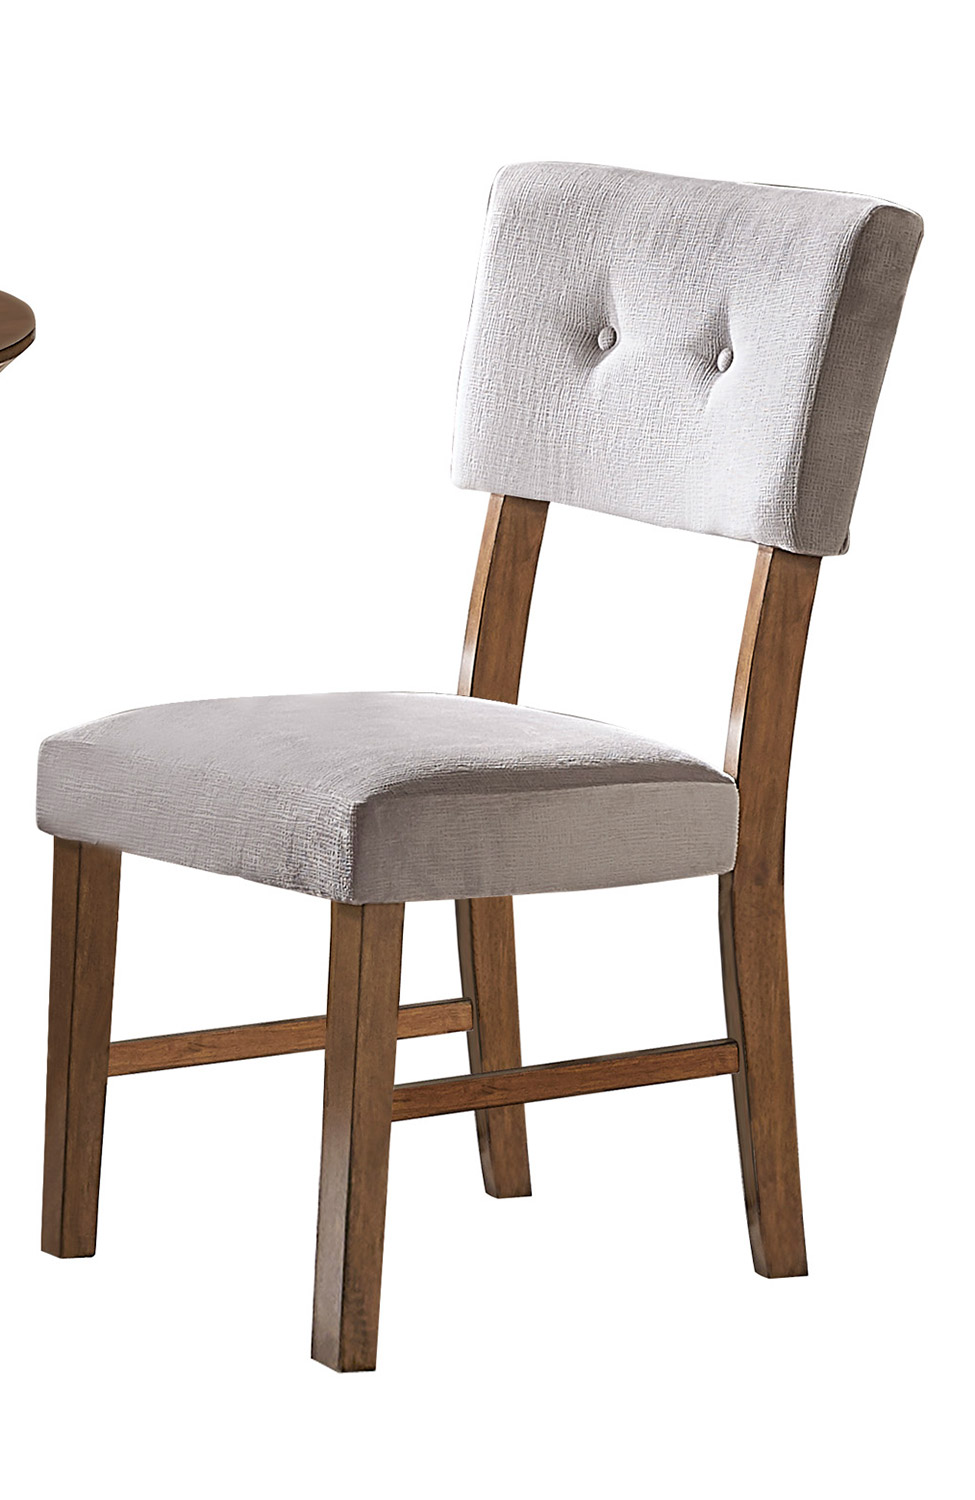 Homelegance Coel Side Chair - Natural